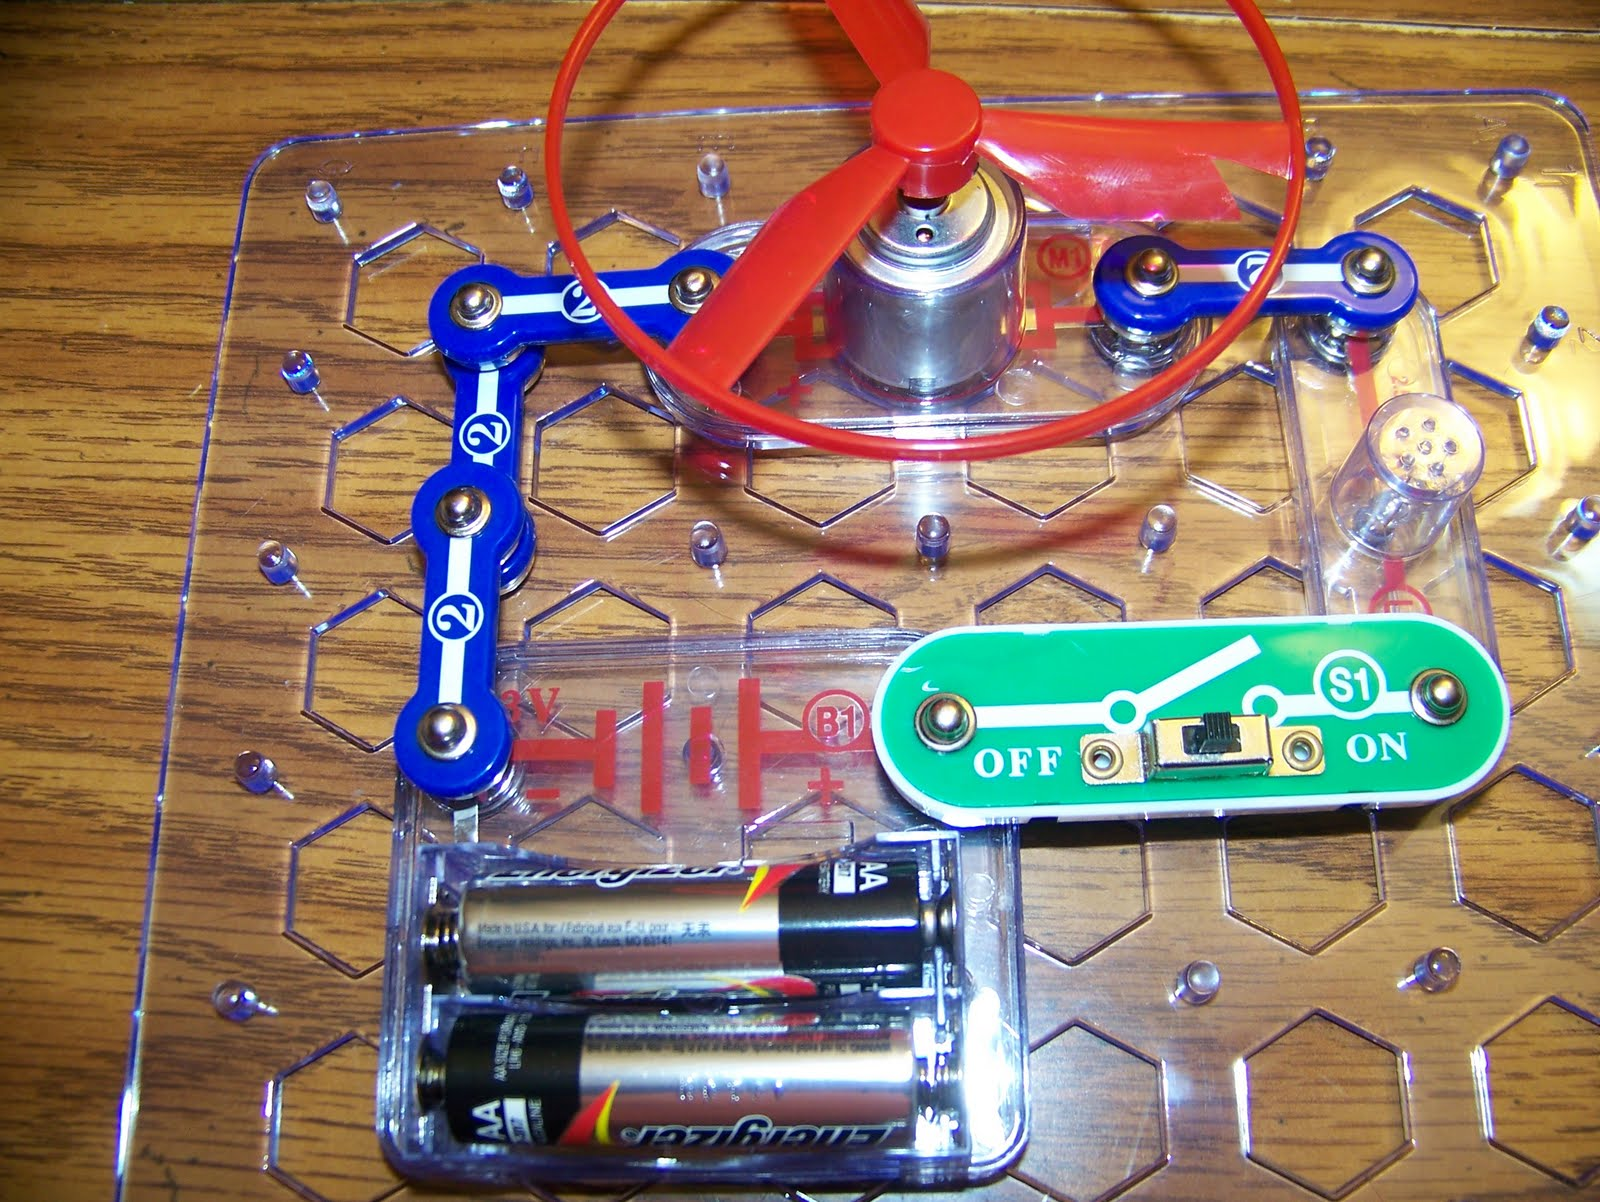 Homeschool And Etc August 2011 Learn About Electronics With Snap Circuits Junior I Was Somewhat Reluctant To Buy This Product Because Lets Face It Its Expensive You Just Never Know If Will Become A Favourite Or